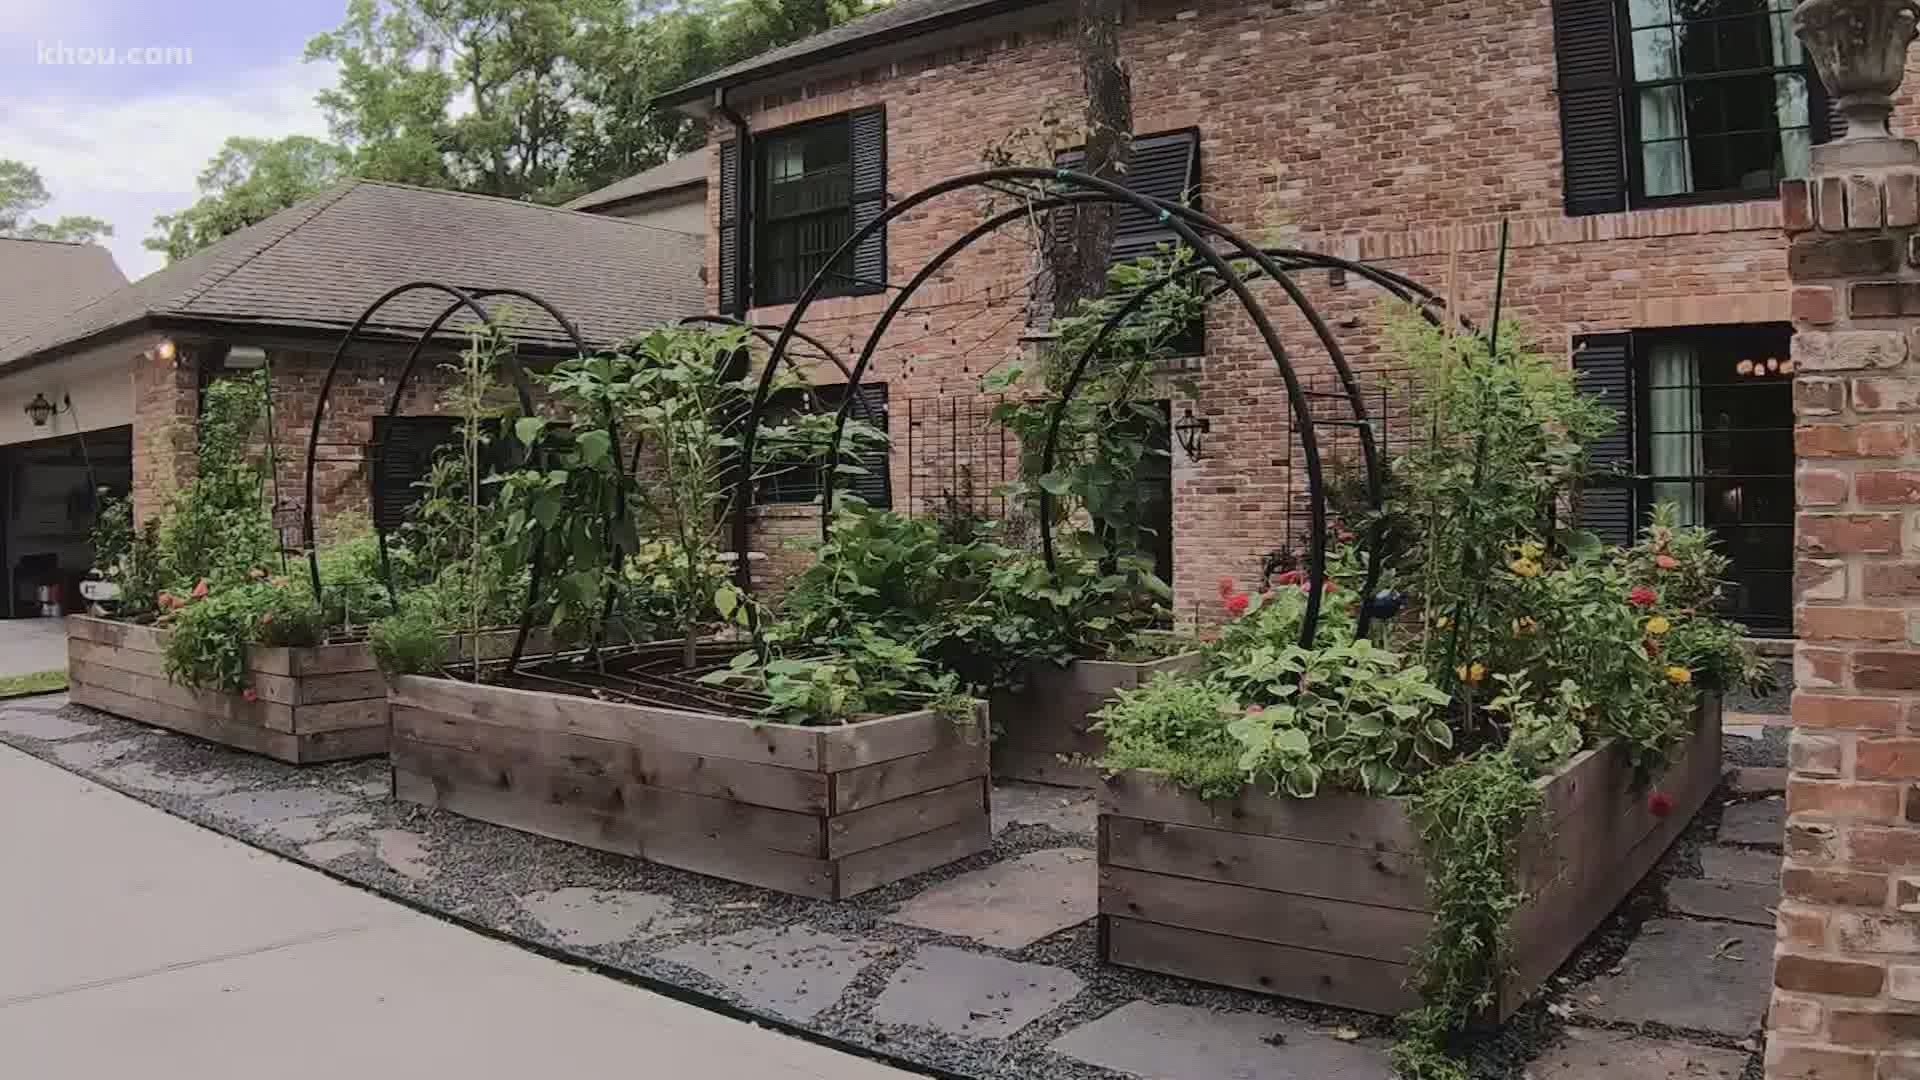 Rooted Garden Offers And Installs Raised Kitchen Garden Beds Wtsp Com